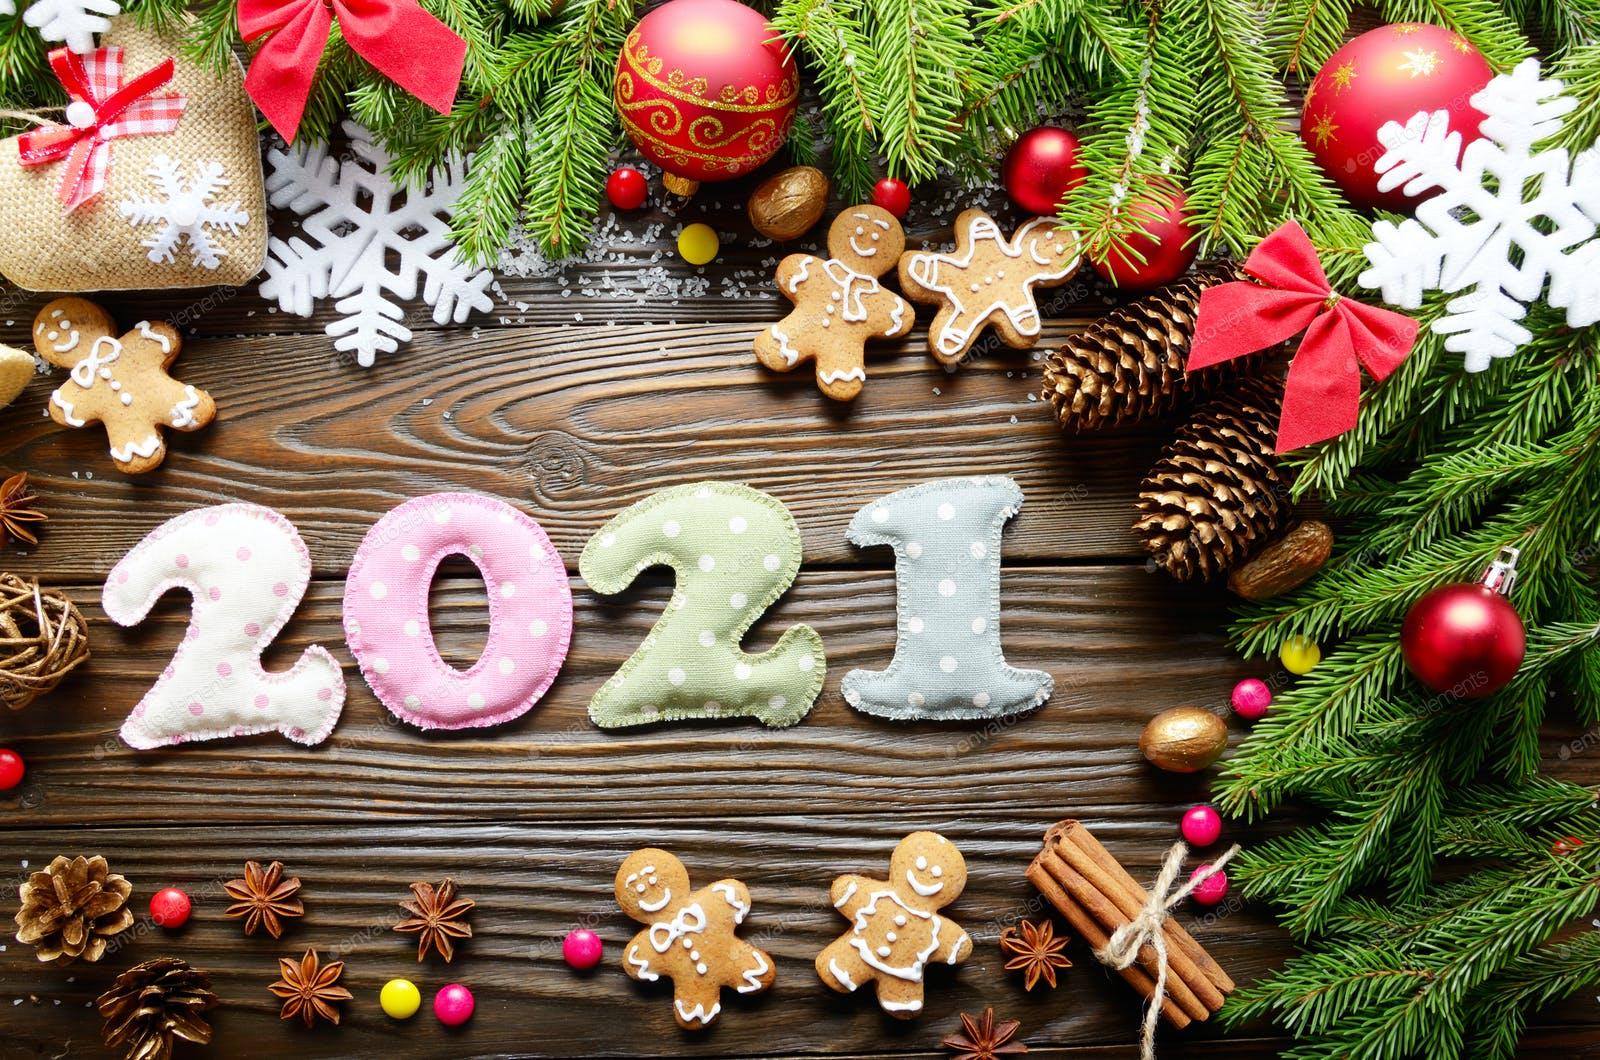 Christmas Fabric 2021 Release Colorful Stitched Digits 2021 Of Polkadot Fabric With Christmas Photo By E Mikh On Envato Elements